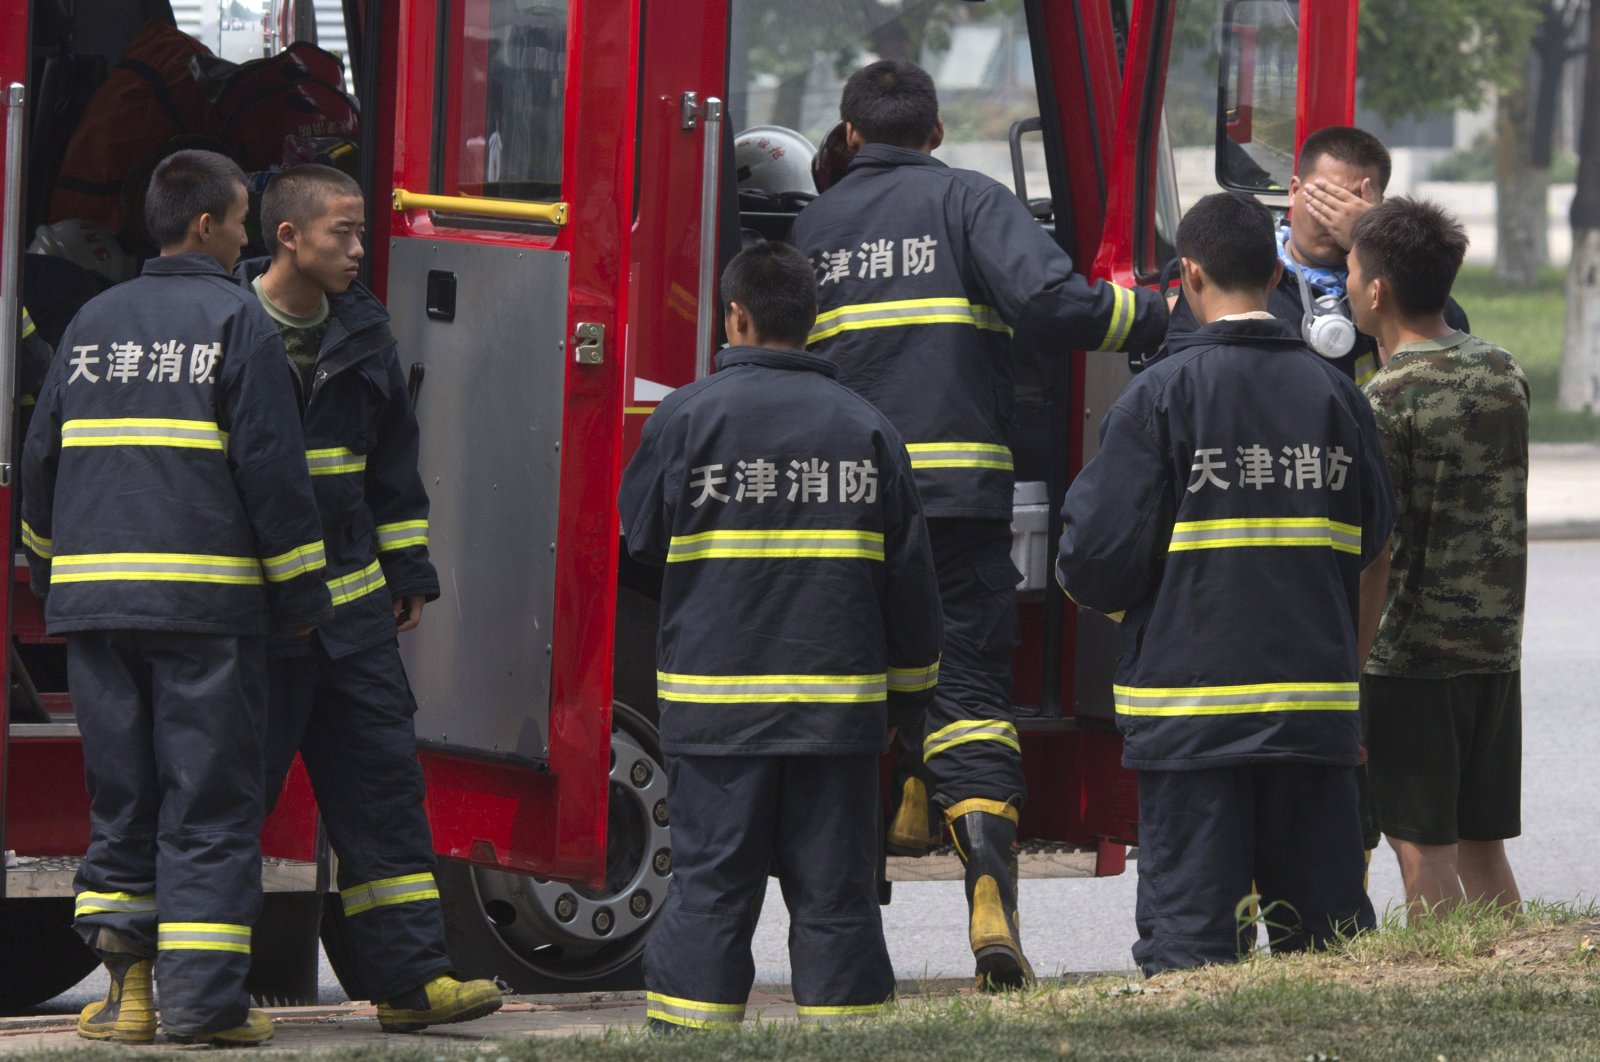 Chinese firefighters wait near the site of an explosion in northeastern China's Tianjin municipality, Aug. 15, 2015. (AP Photo)